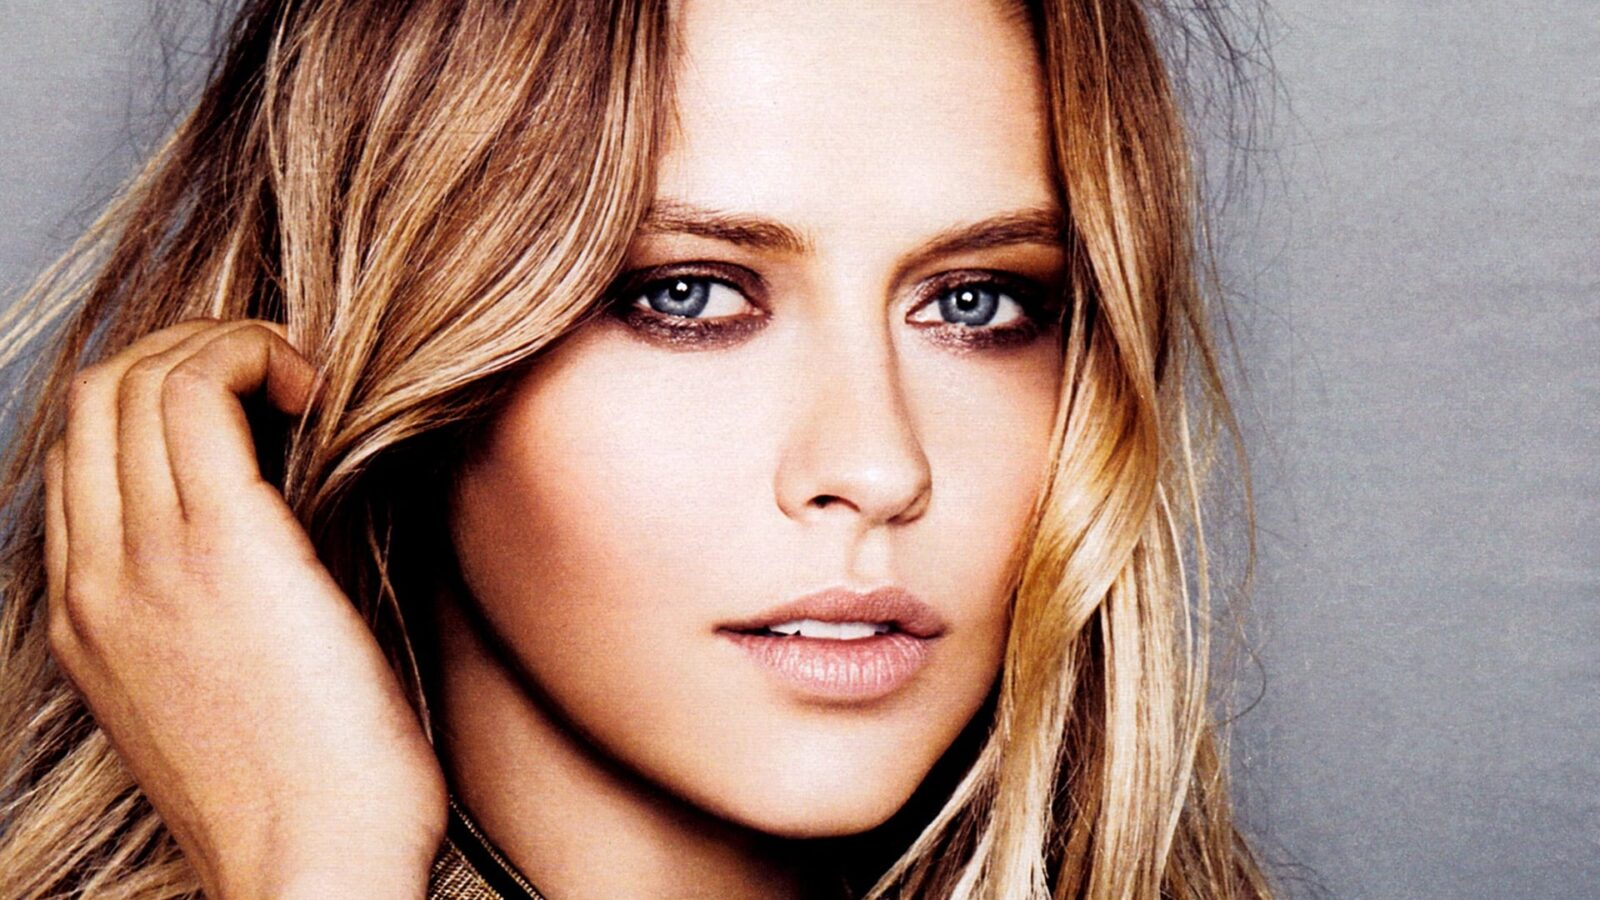 Awesome Cool Car Wallpapers Teresa Palmer Hd Wallpapers Free Download